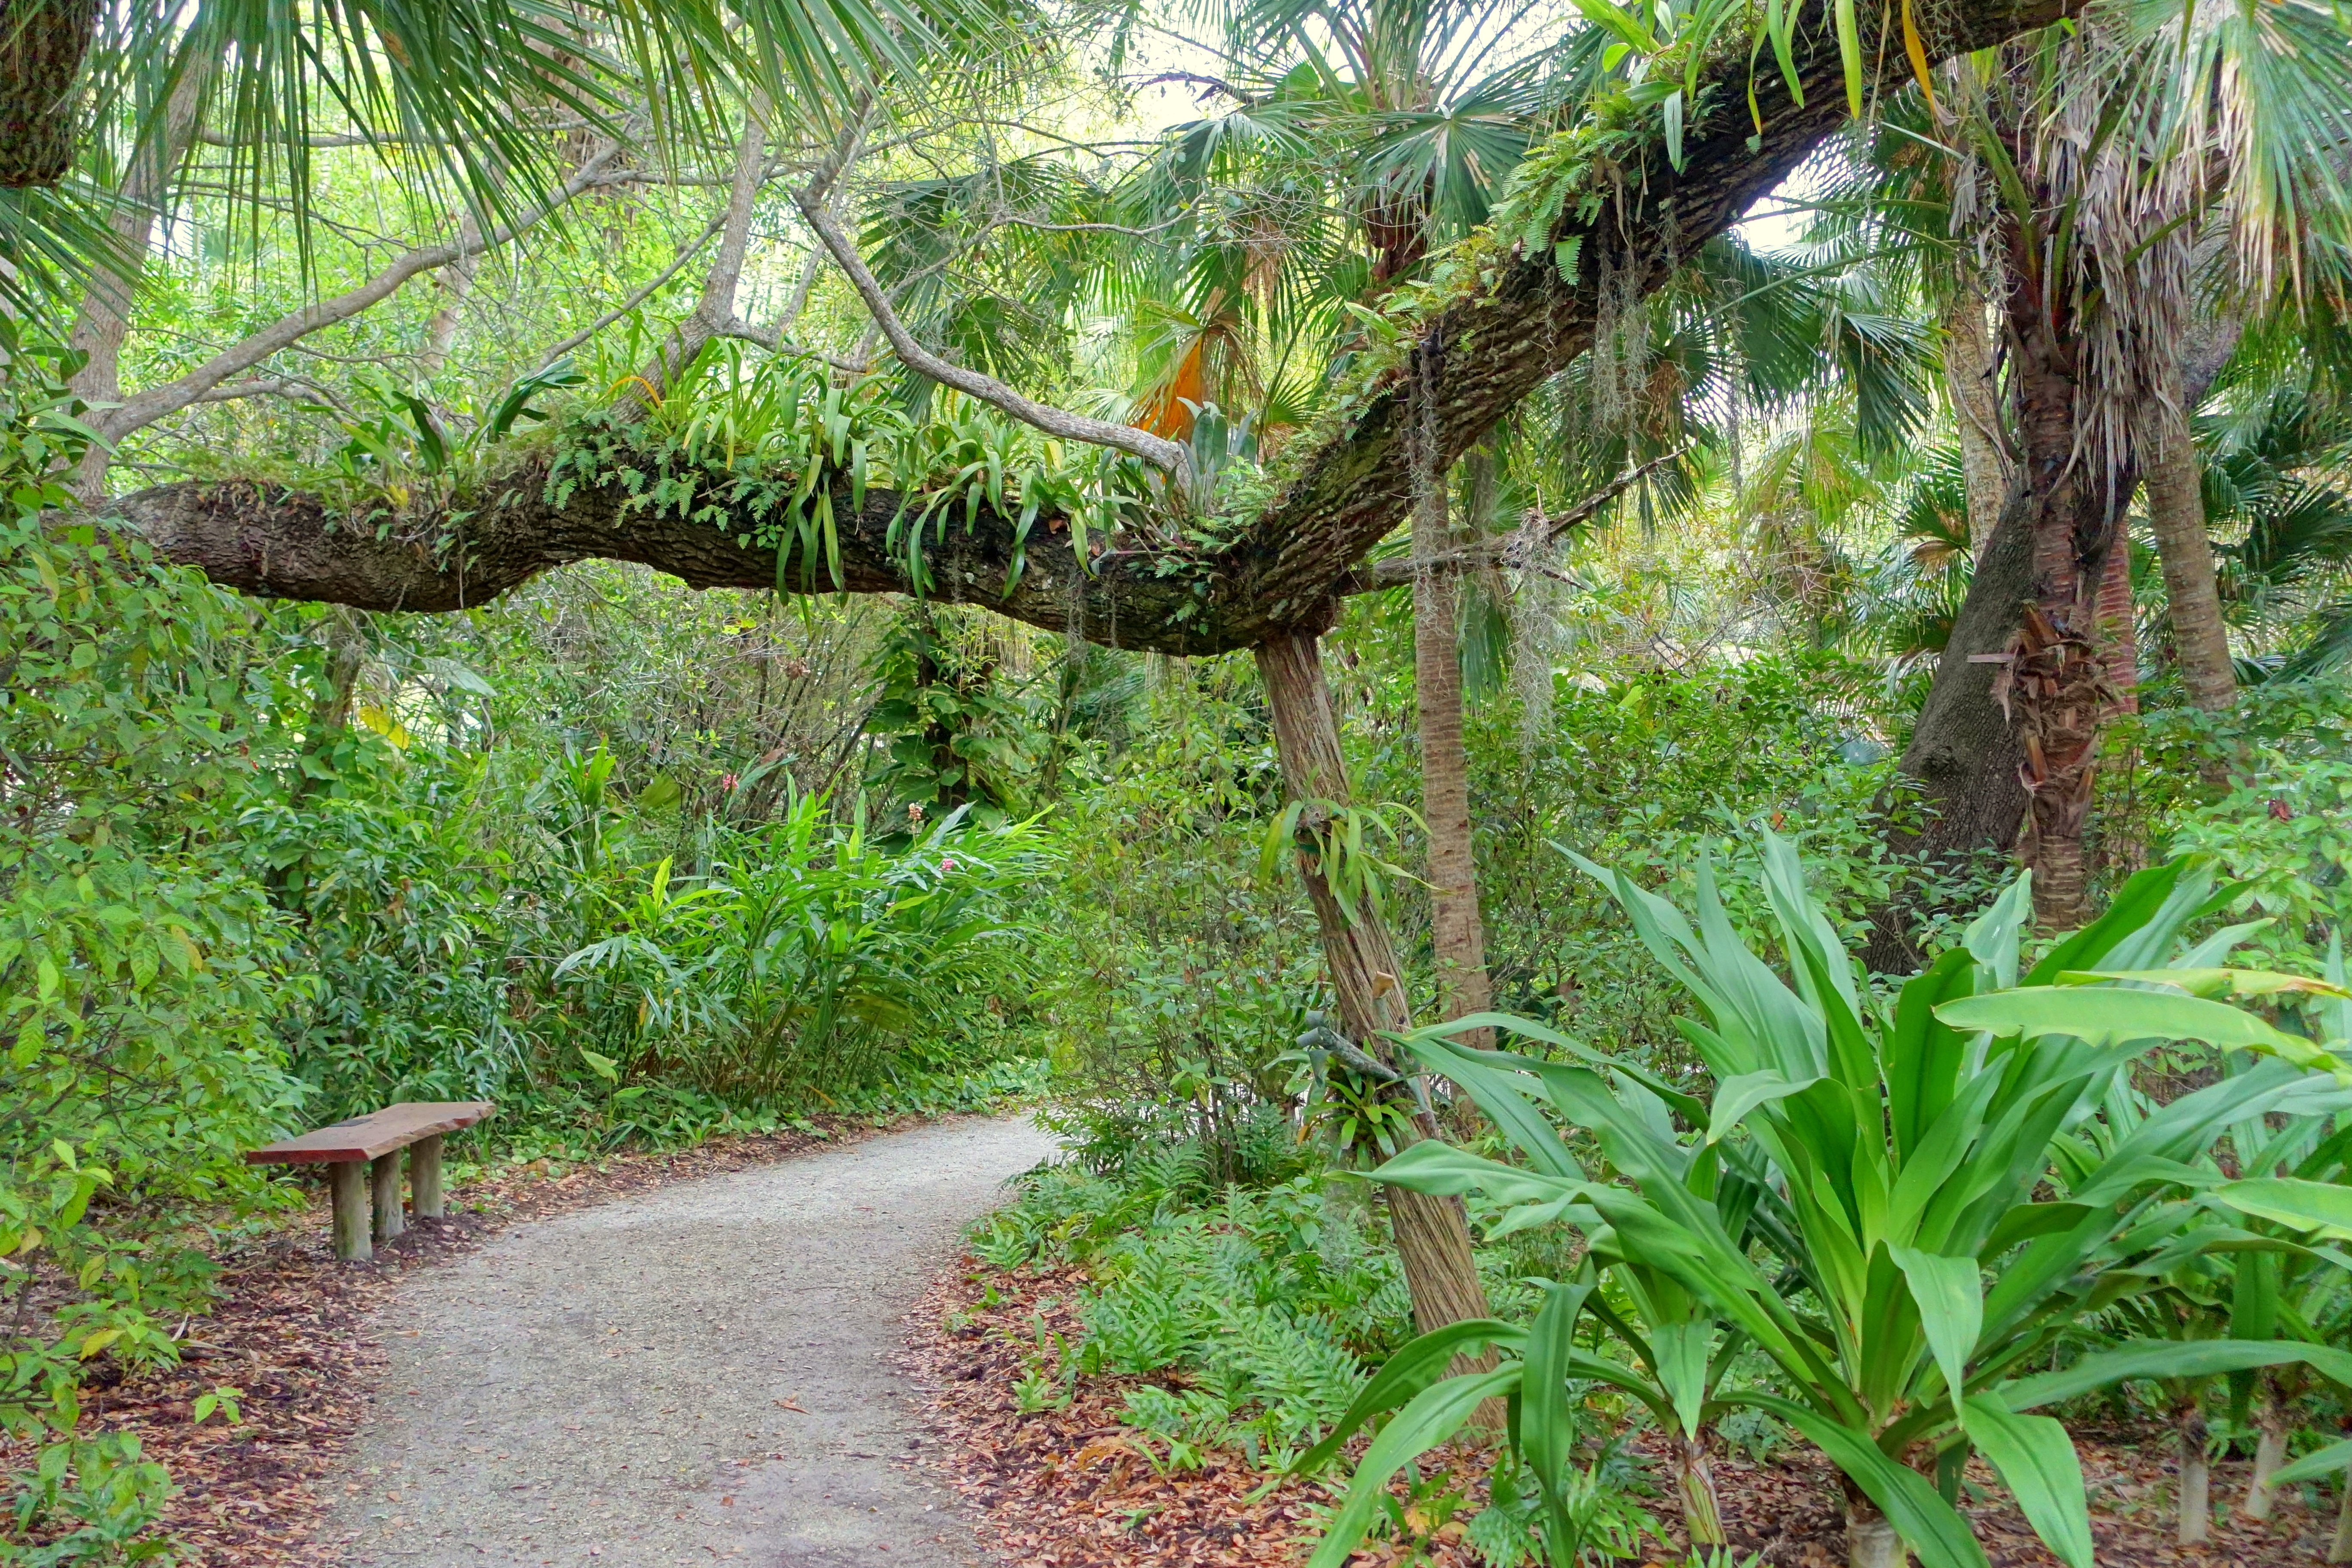 File:Pathway - McKee Botanical Garden - Vero Beach, Florida ...